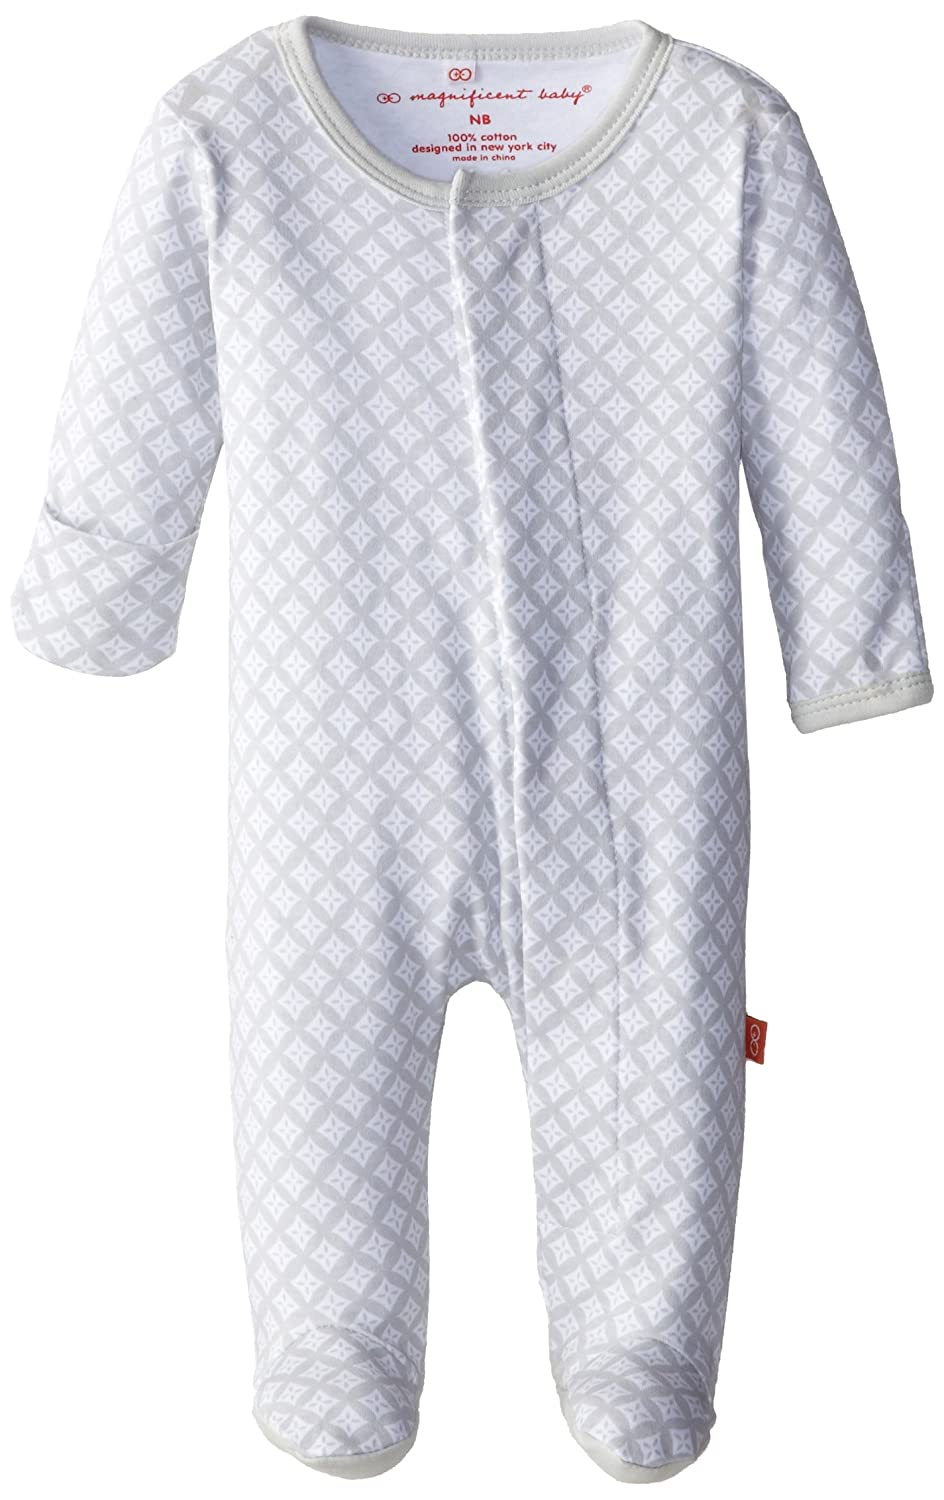 Magnificent Baby Unisex-Baby New-Born Footie, White Diamonds 1761-U